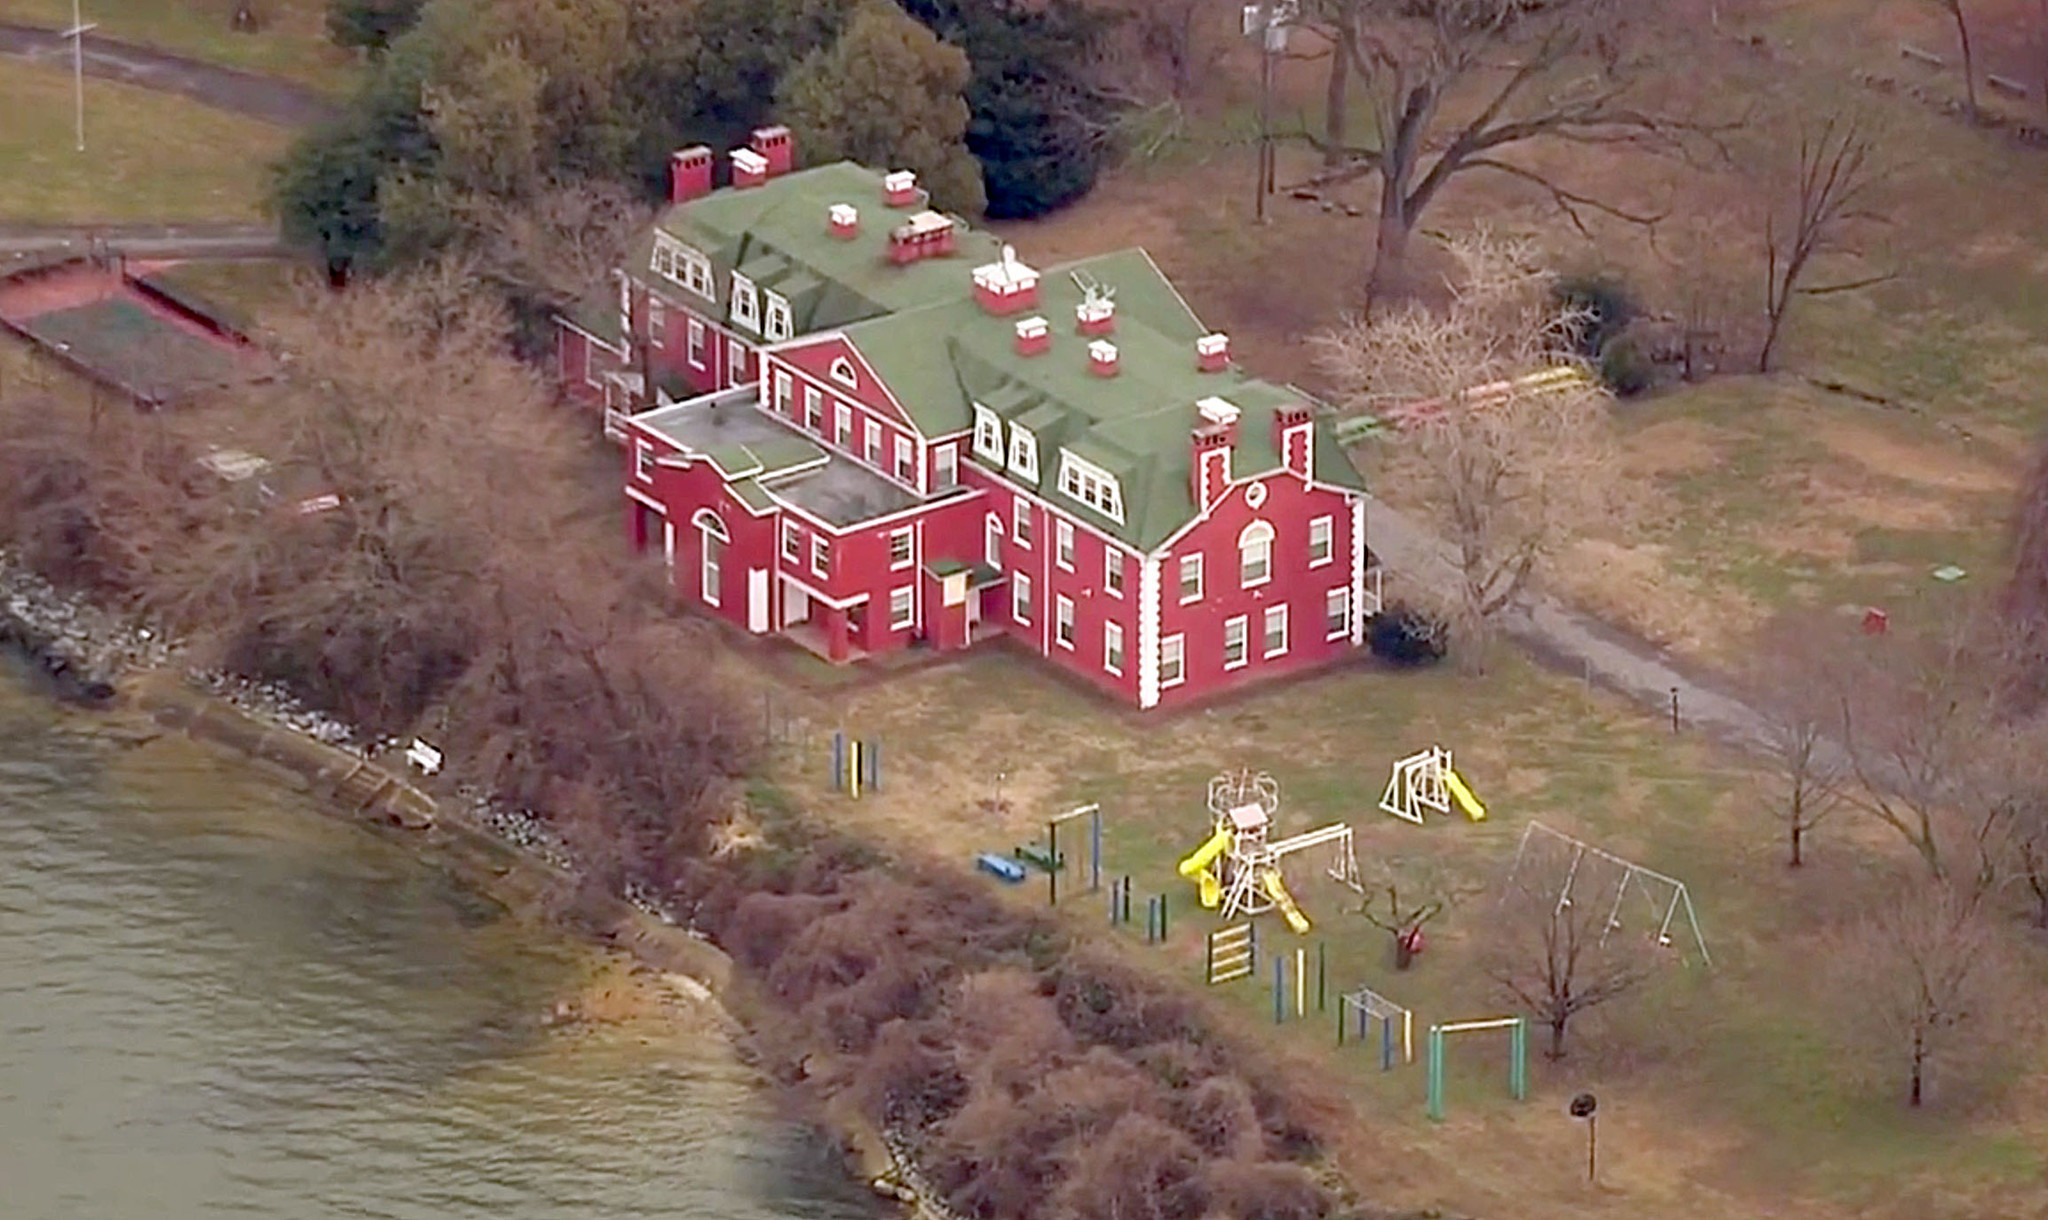 Trucks For Sale In Md >> Russian retreat on Eastern Shore offers glimpse into ...